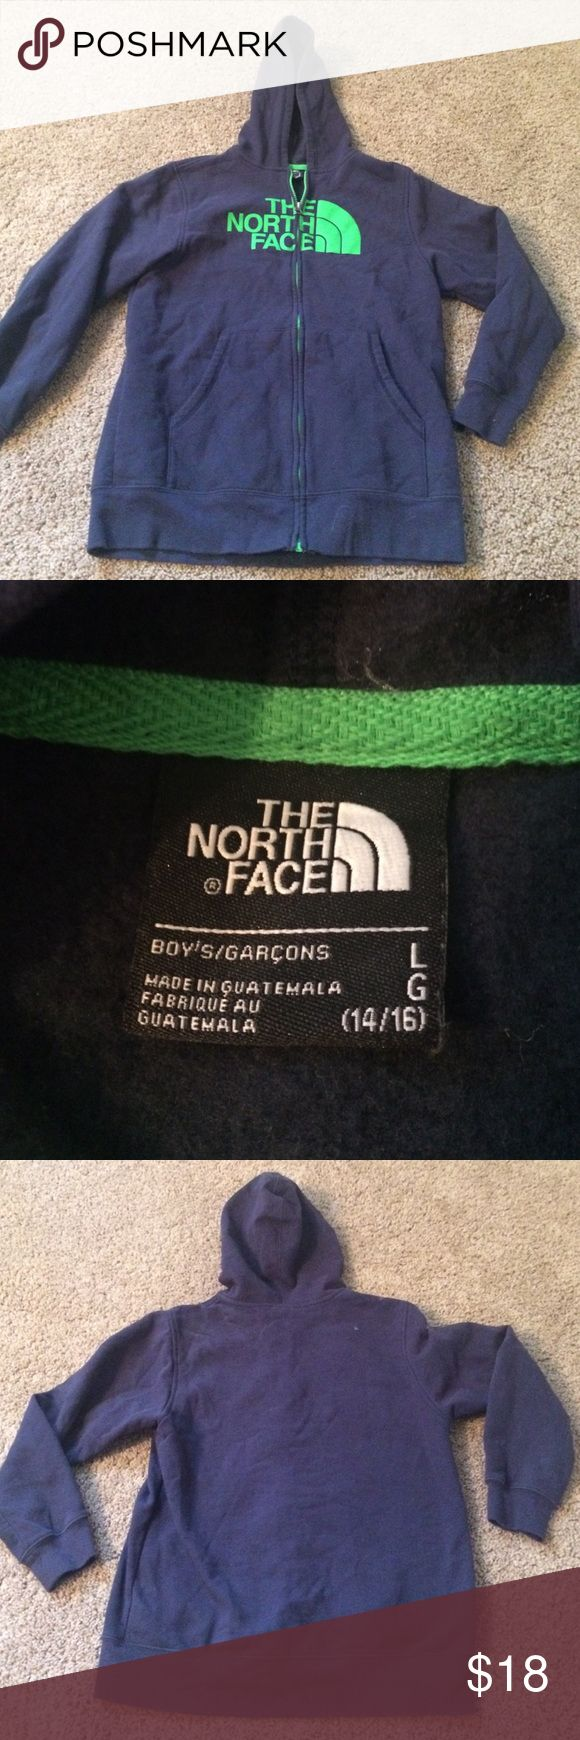 The north face boys Sz lge zipper hoodie jacket The north face navy blue boys size large zip front hoodie The North Face Shirts & Tops Sweatshirts & Hoodies